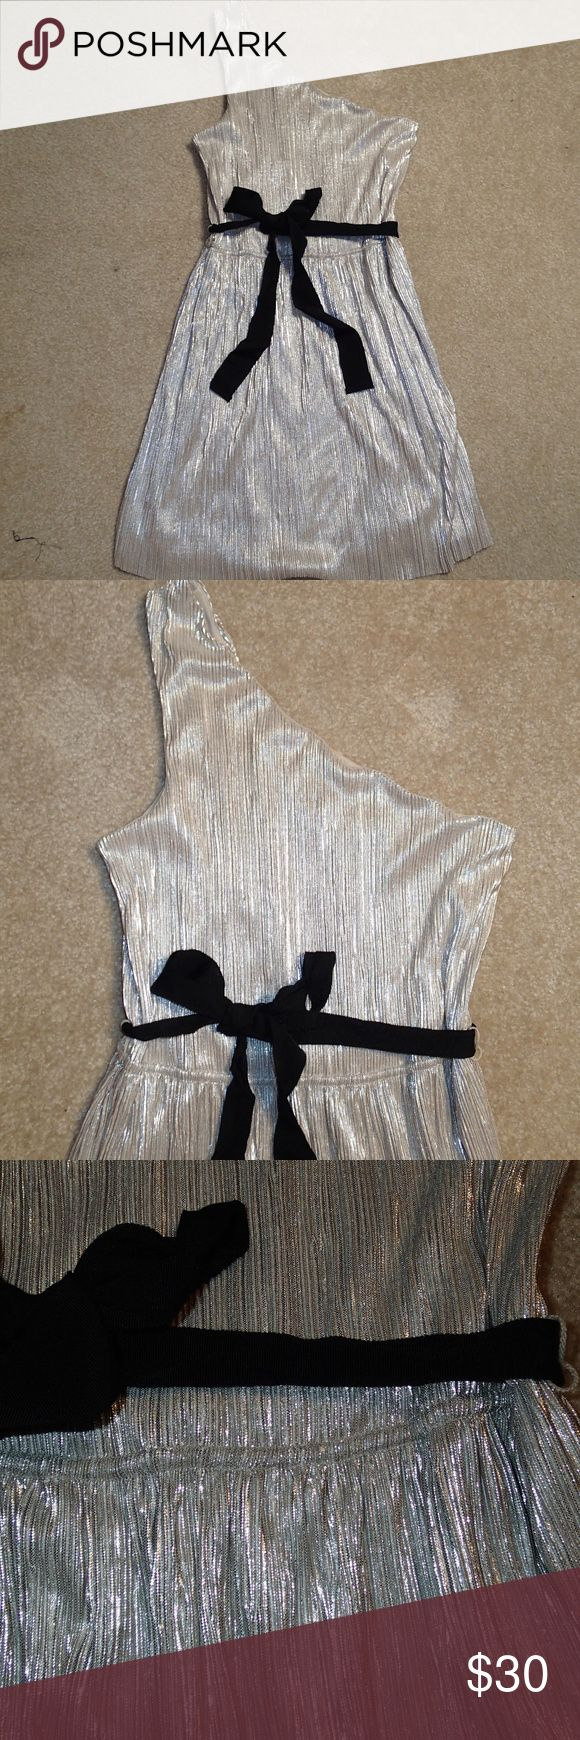 """Express Metallic Gold/Silver One Shoulder Dress This metallic one shoulder dress is perfect for any holiday occasion!   Armpit to Bottom of Dress: 26"""" Express Dresses"""